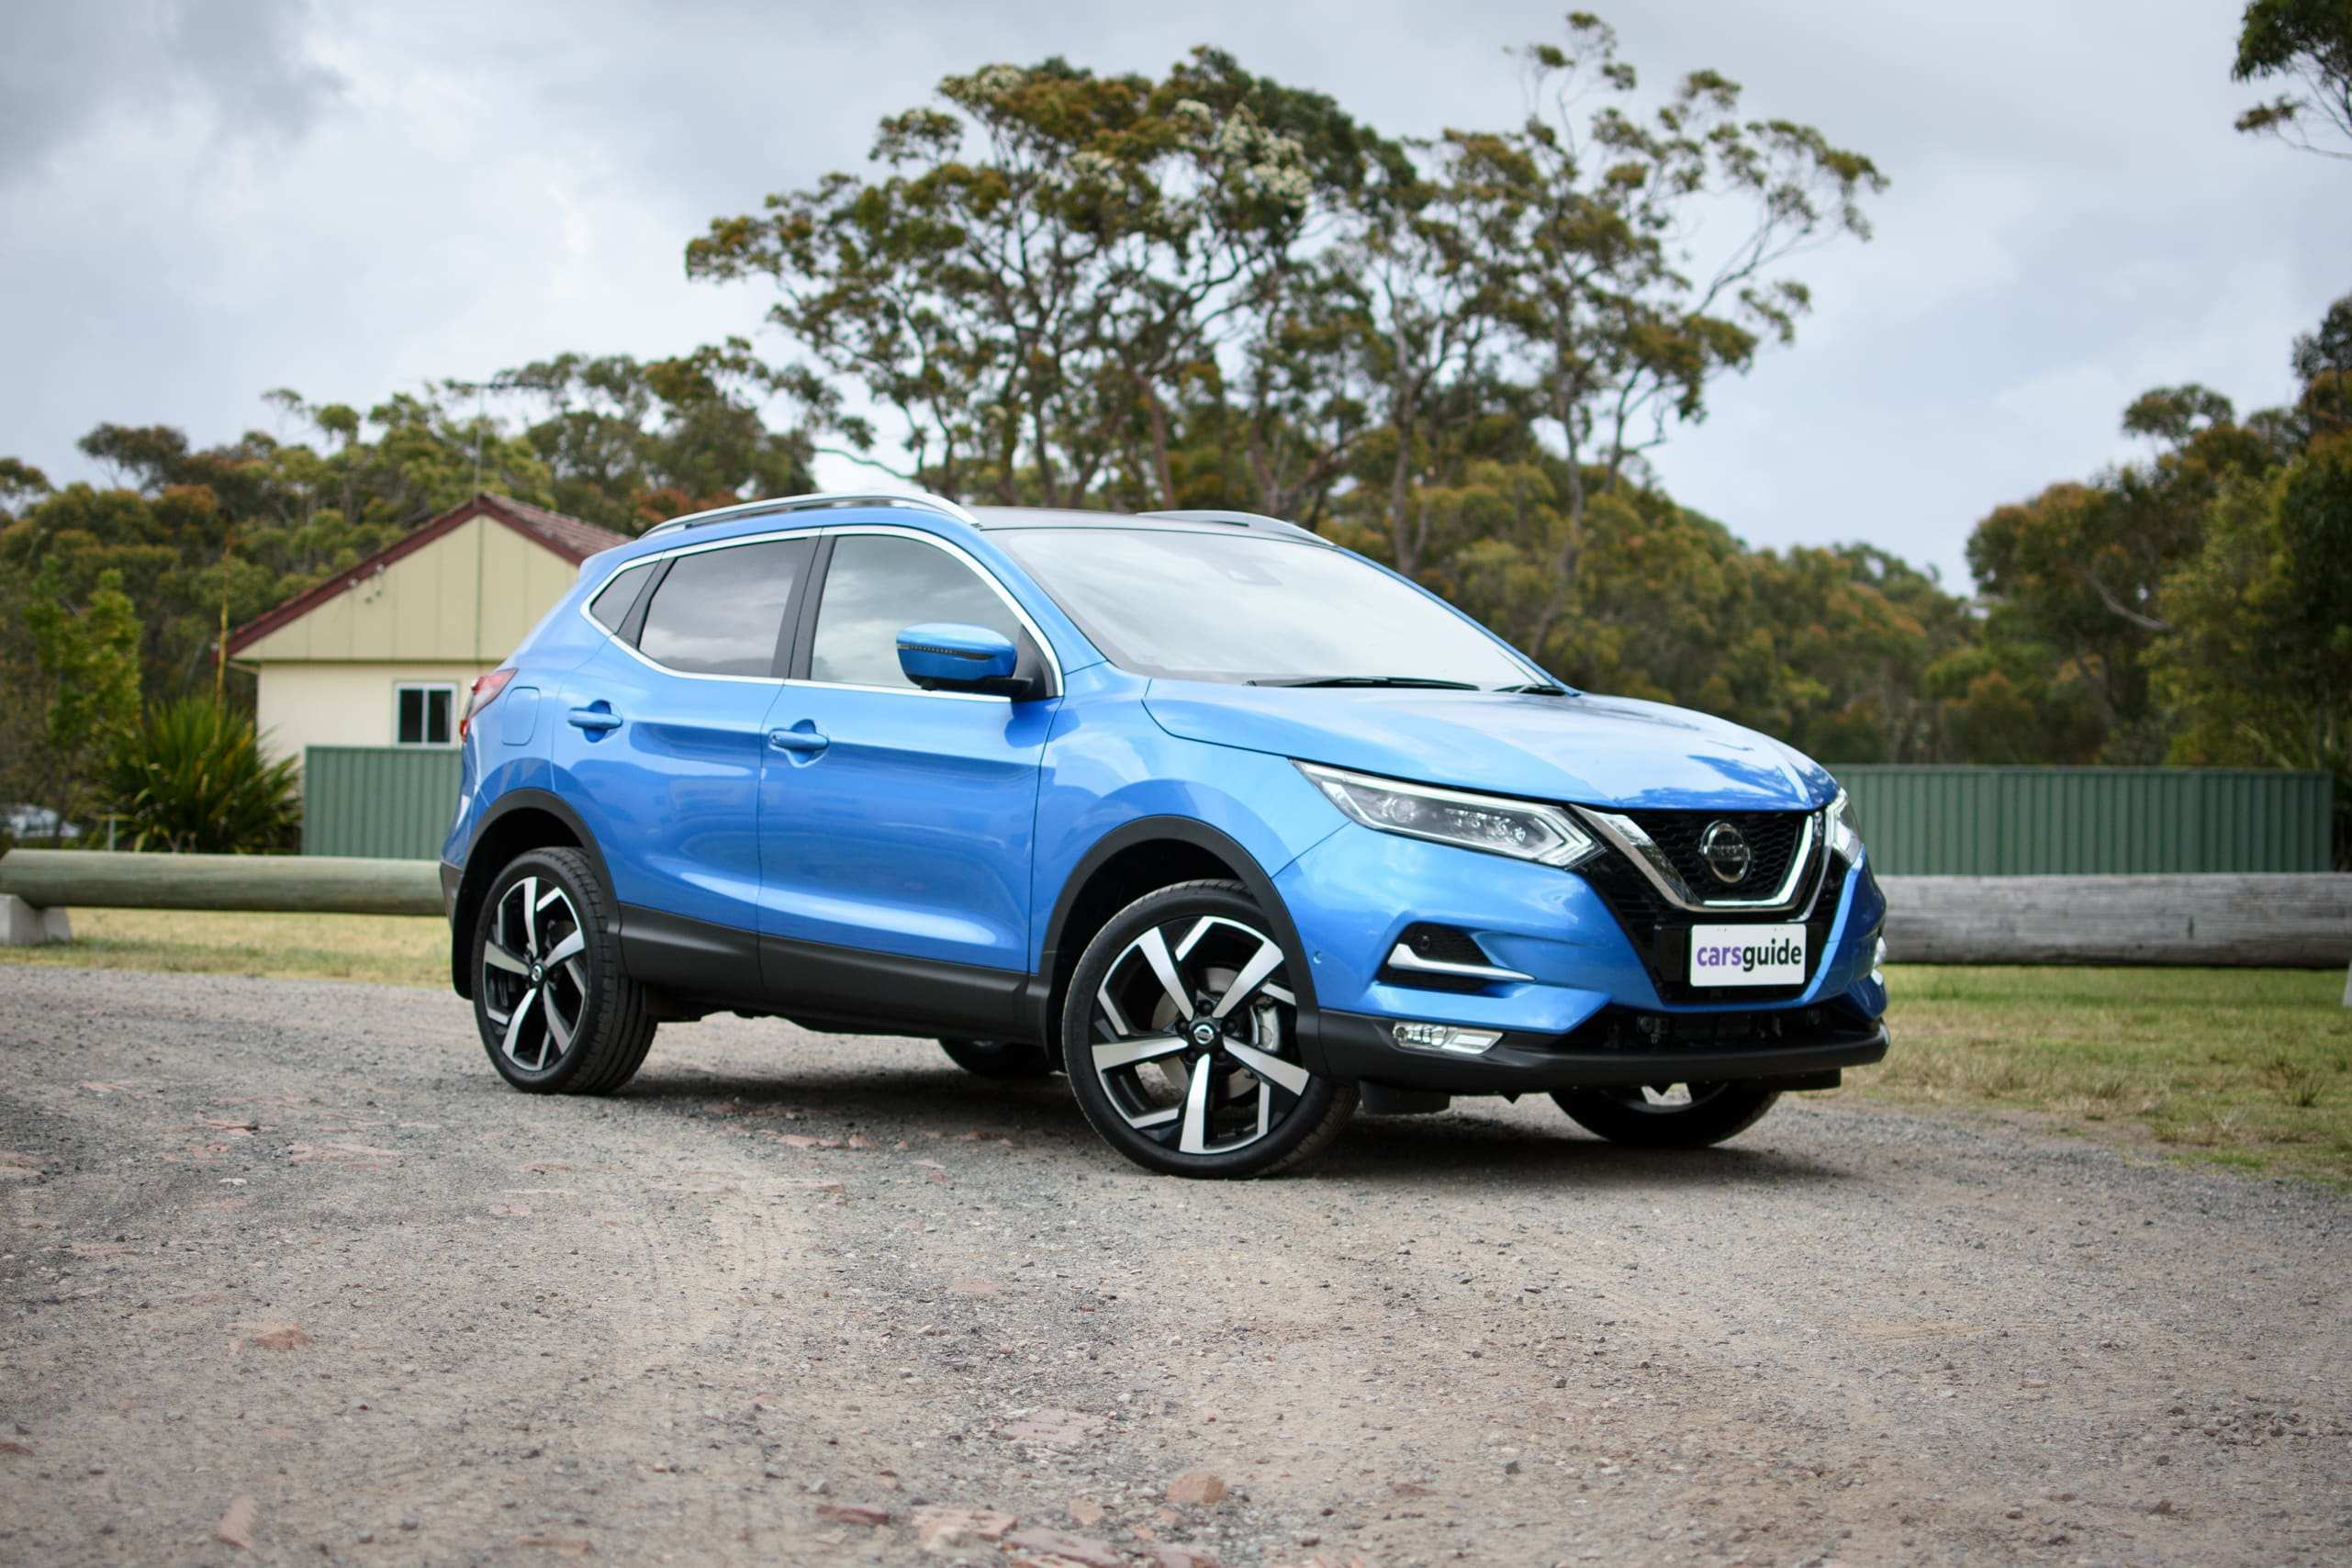 89 Concept of Nissan Qashqai 2019 Overview for Nissan Qashqai 2019